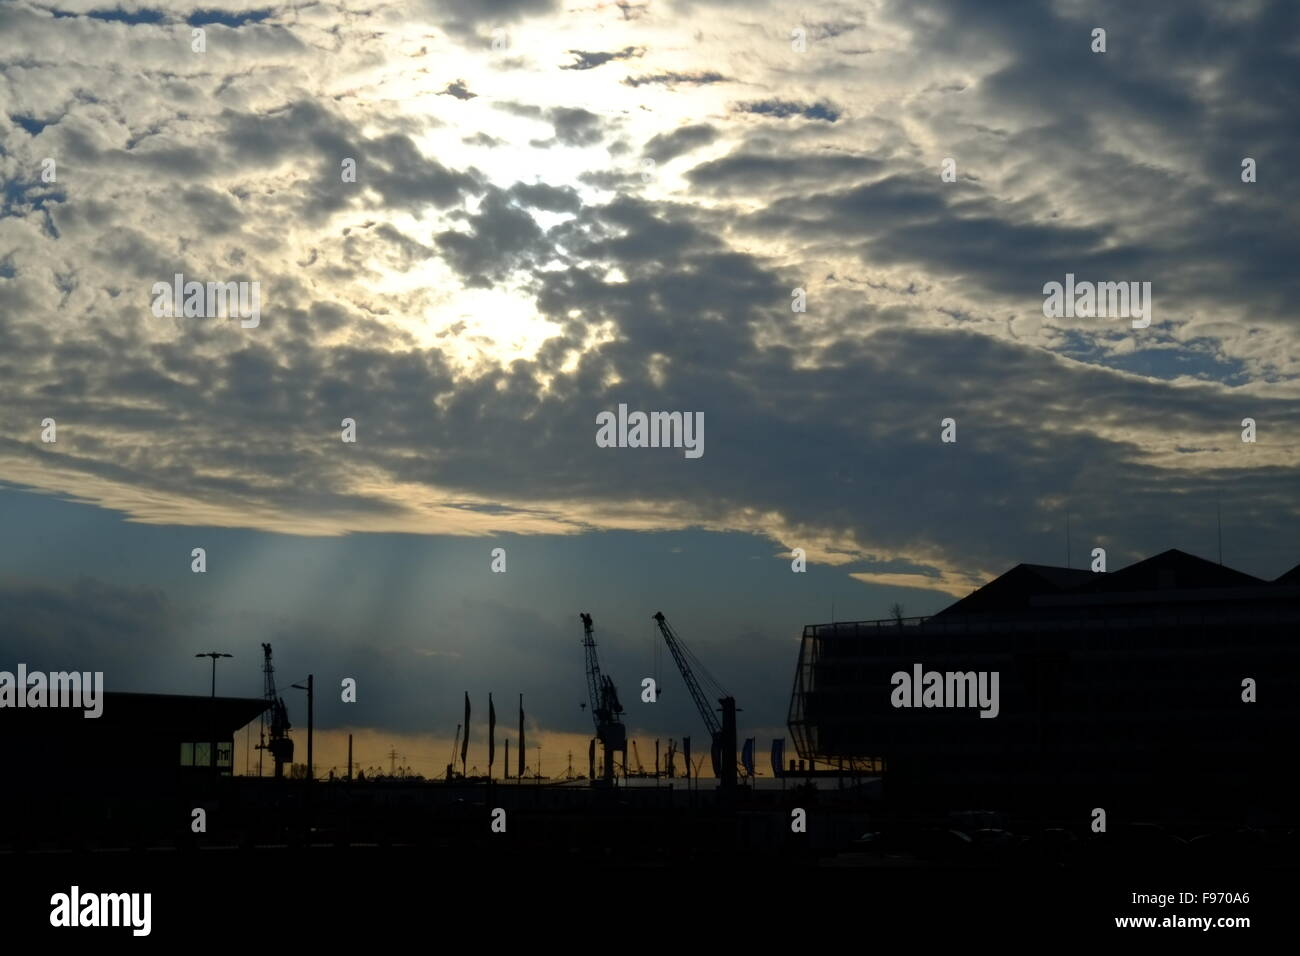 Cranes And Cloudy Sky At Sunset - Stock Image